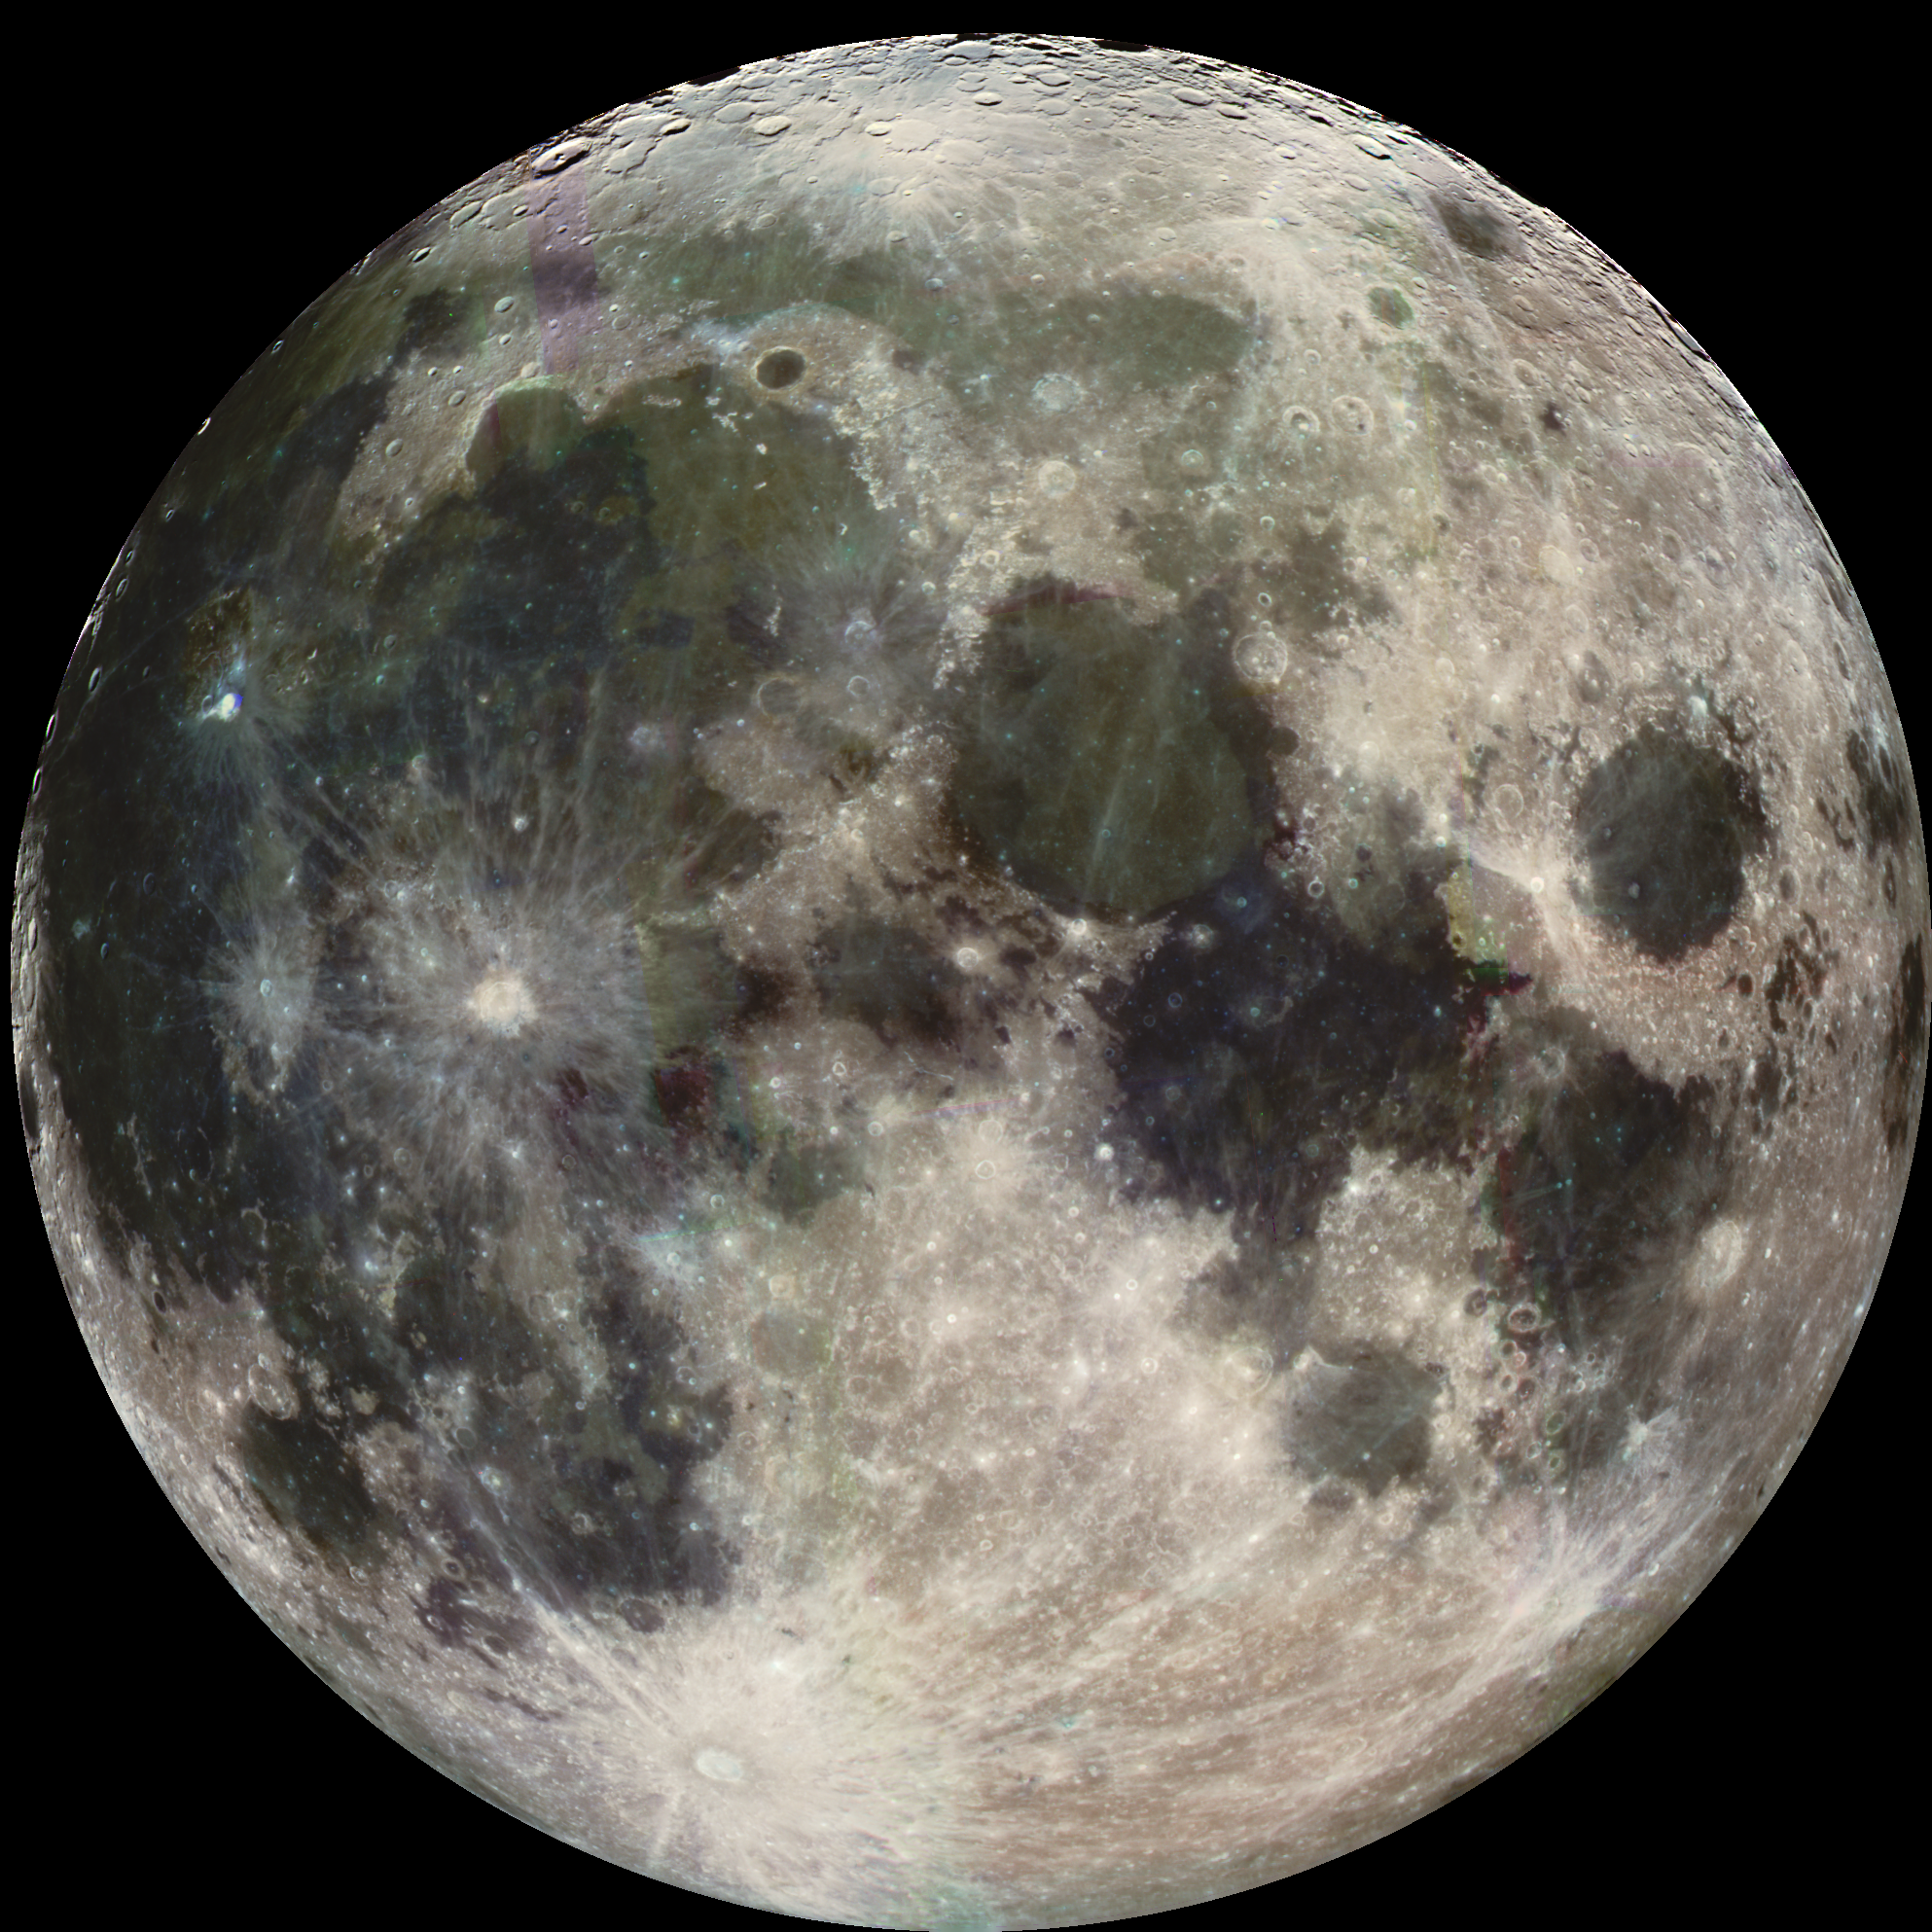 File:Full moon.png | Moon, Full moon, Moon images